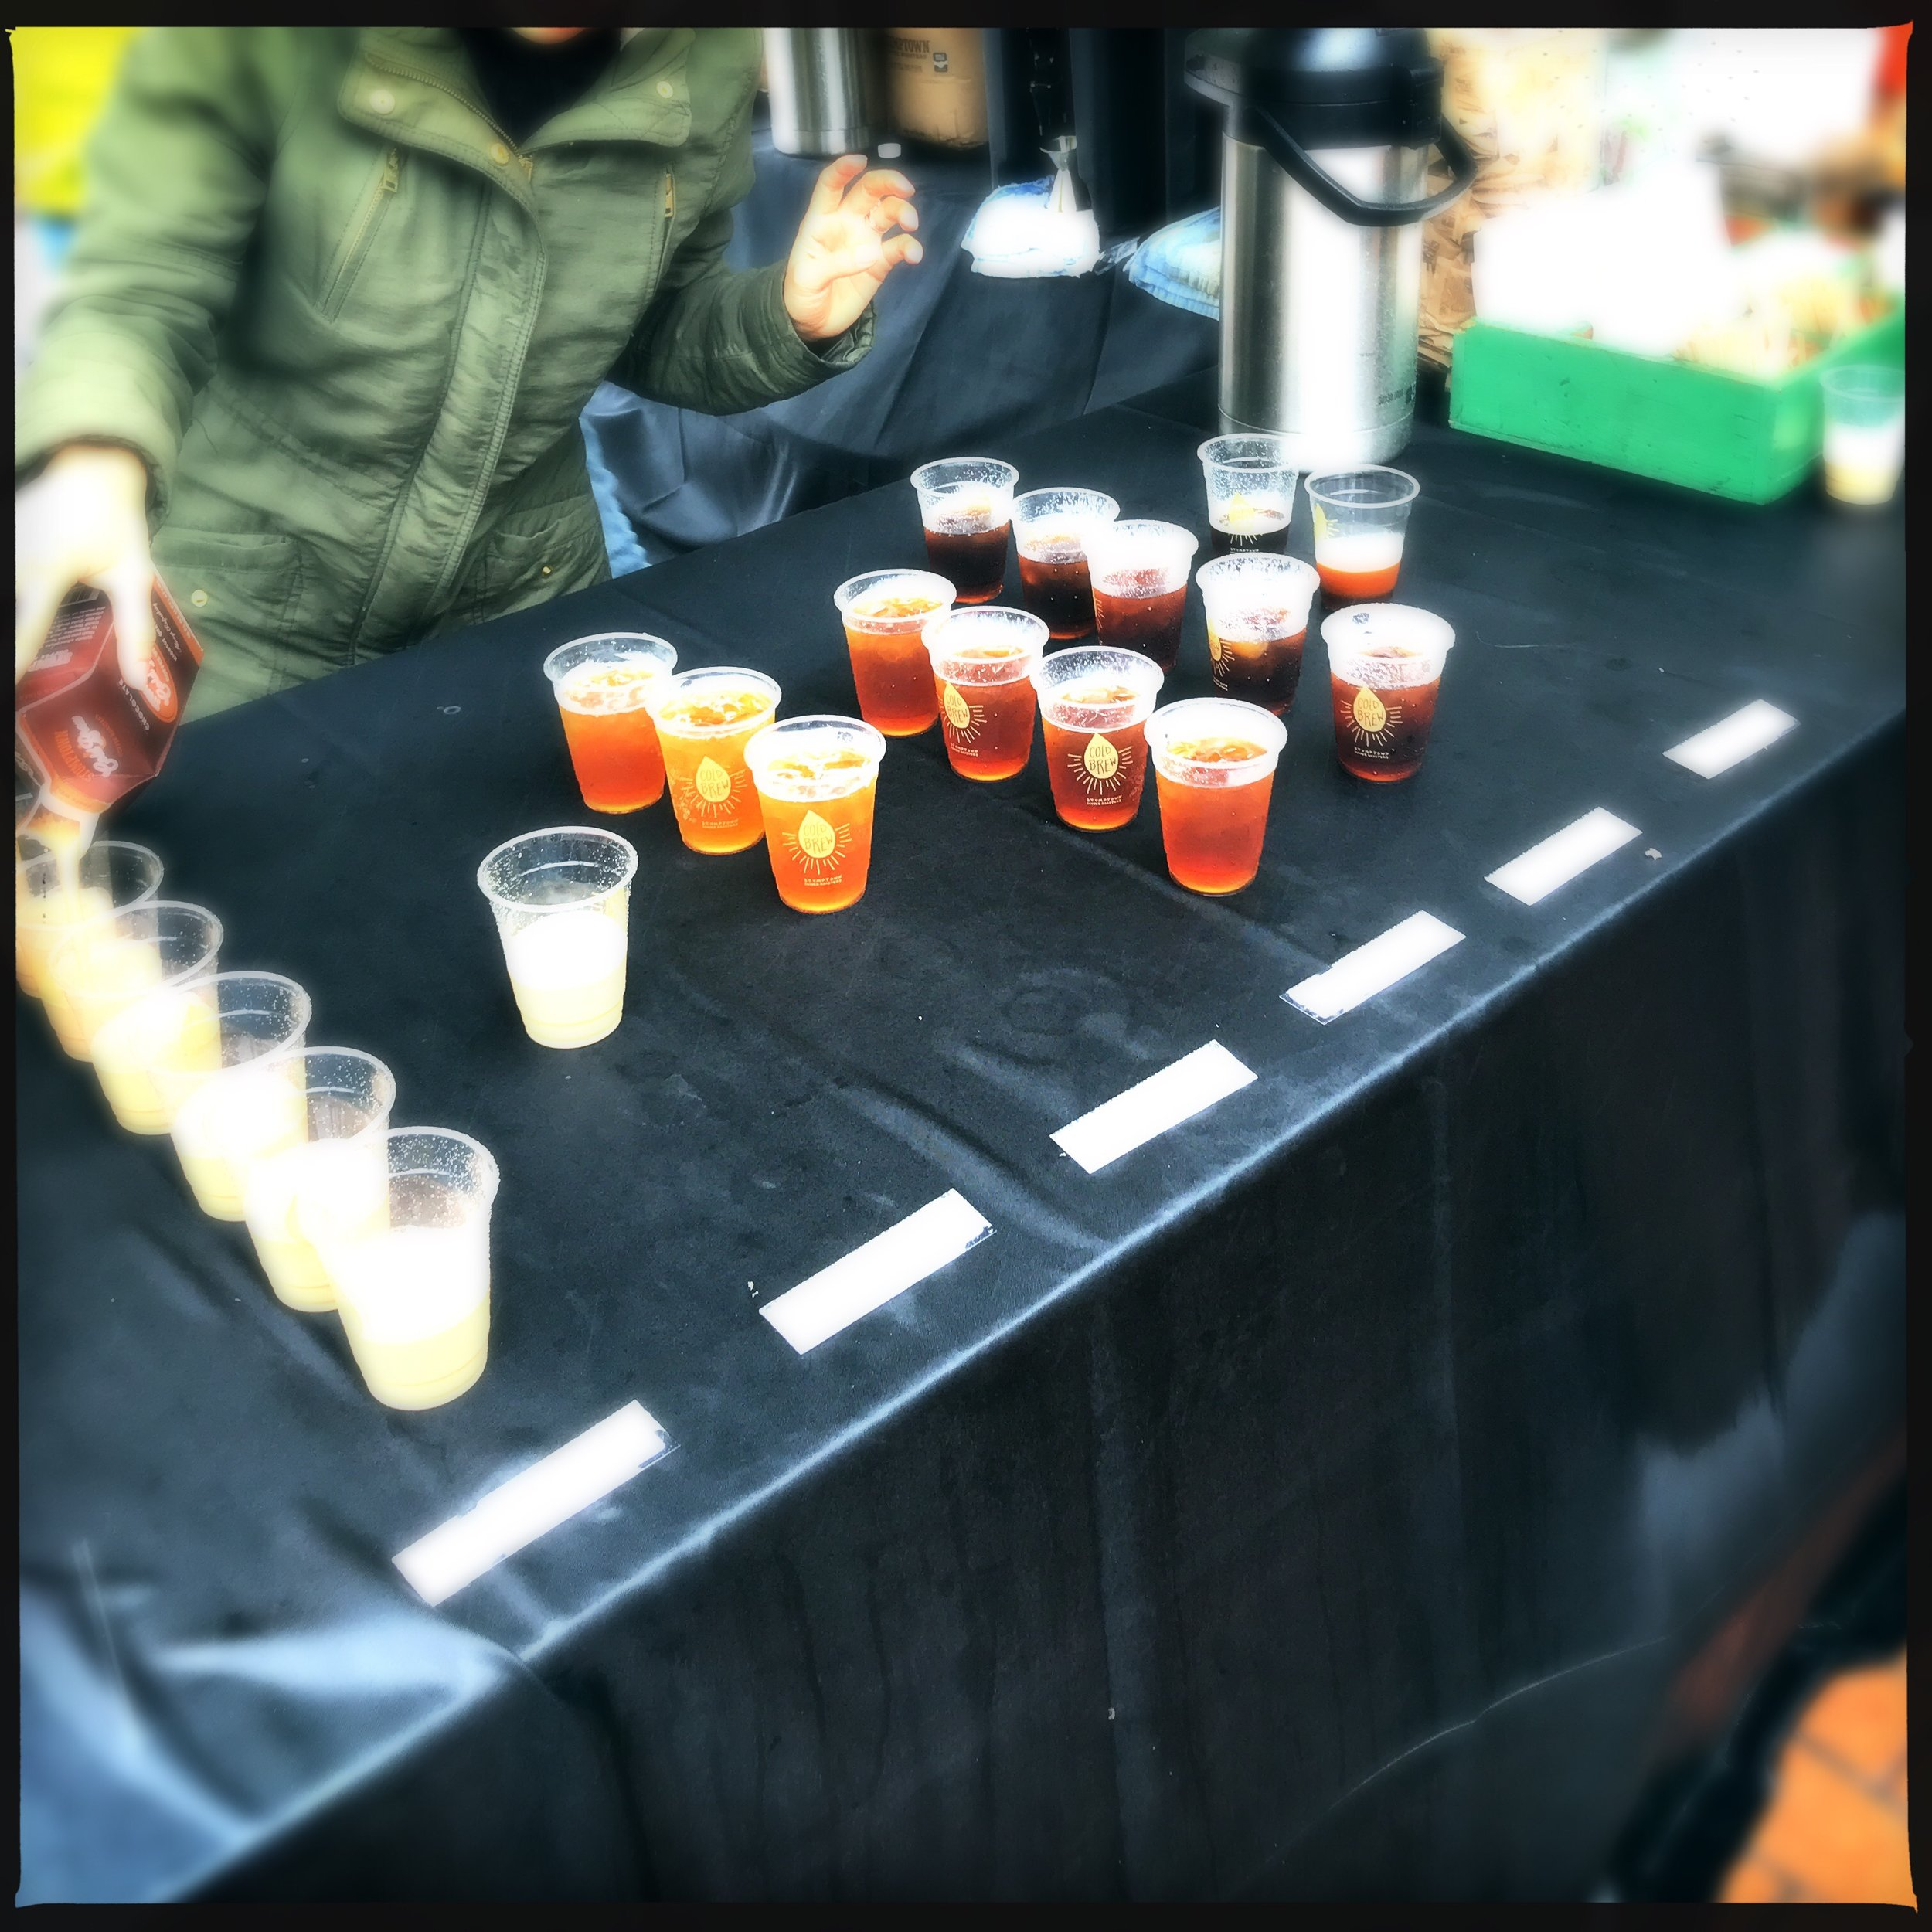 The folks at Stumptown were showing off coffee sodas along side their now legendary cold brew.